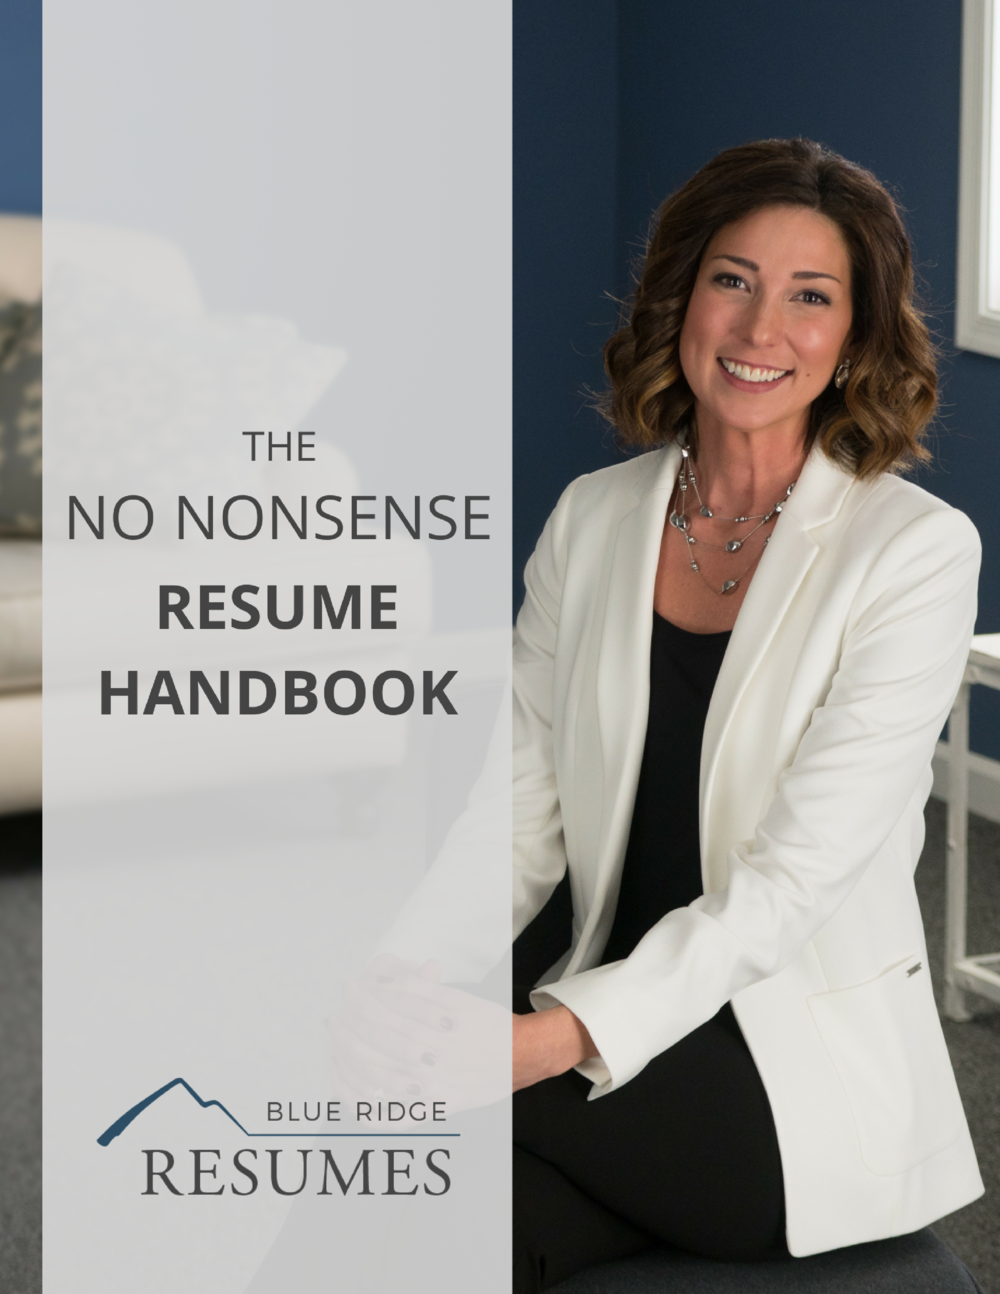 The No Nonsense Resume Handbook.png